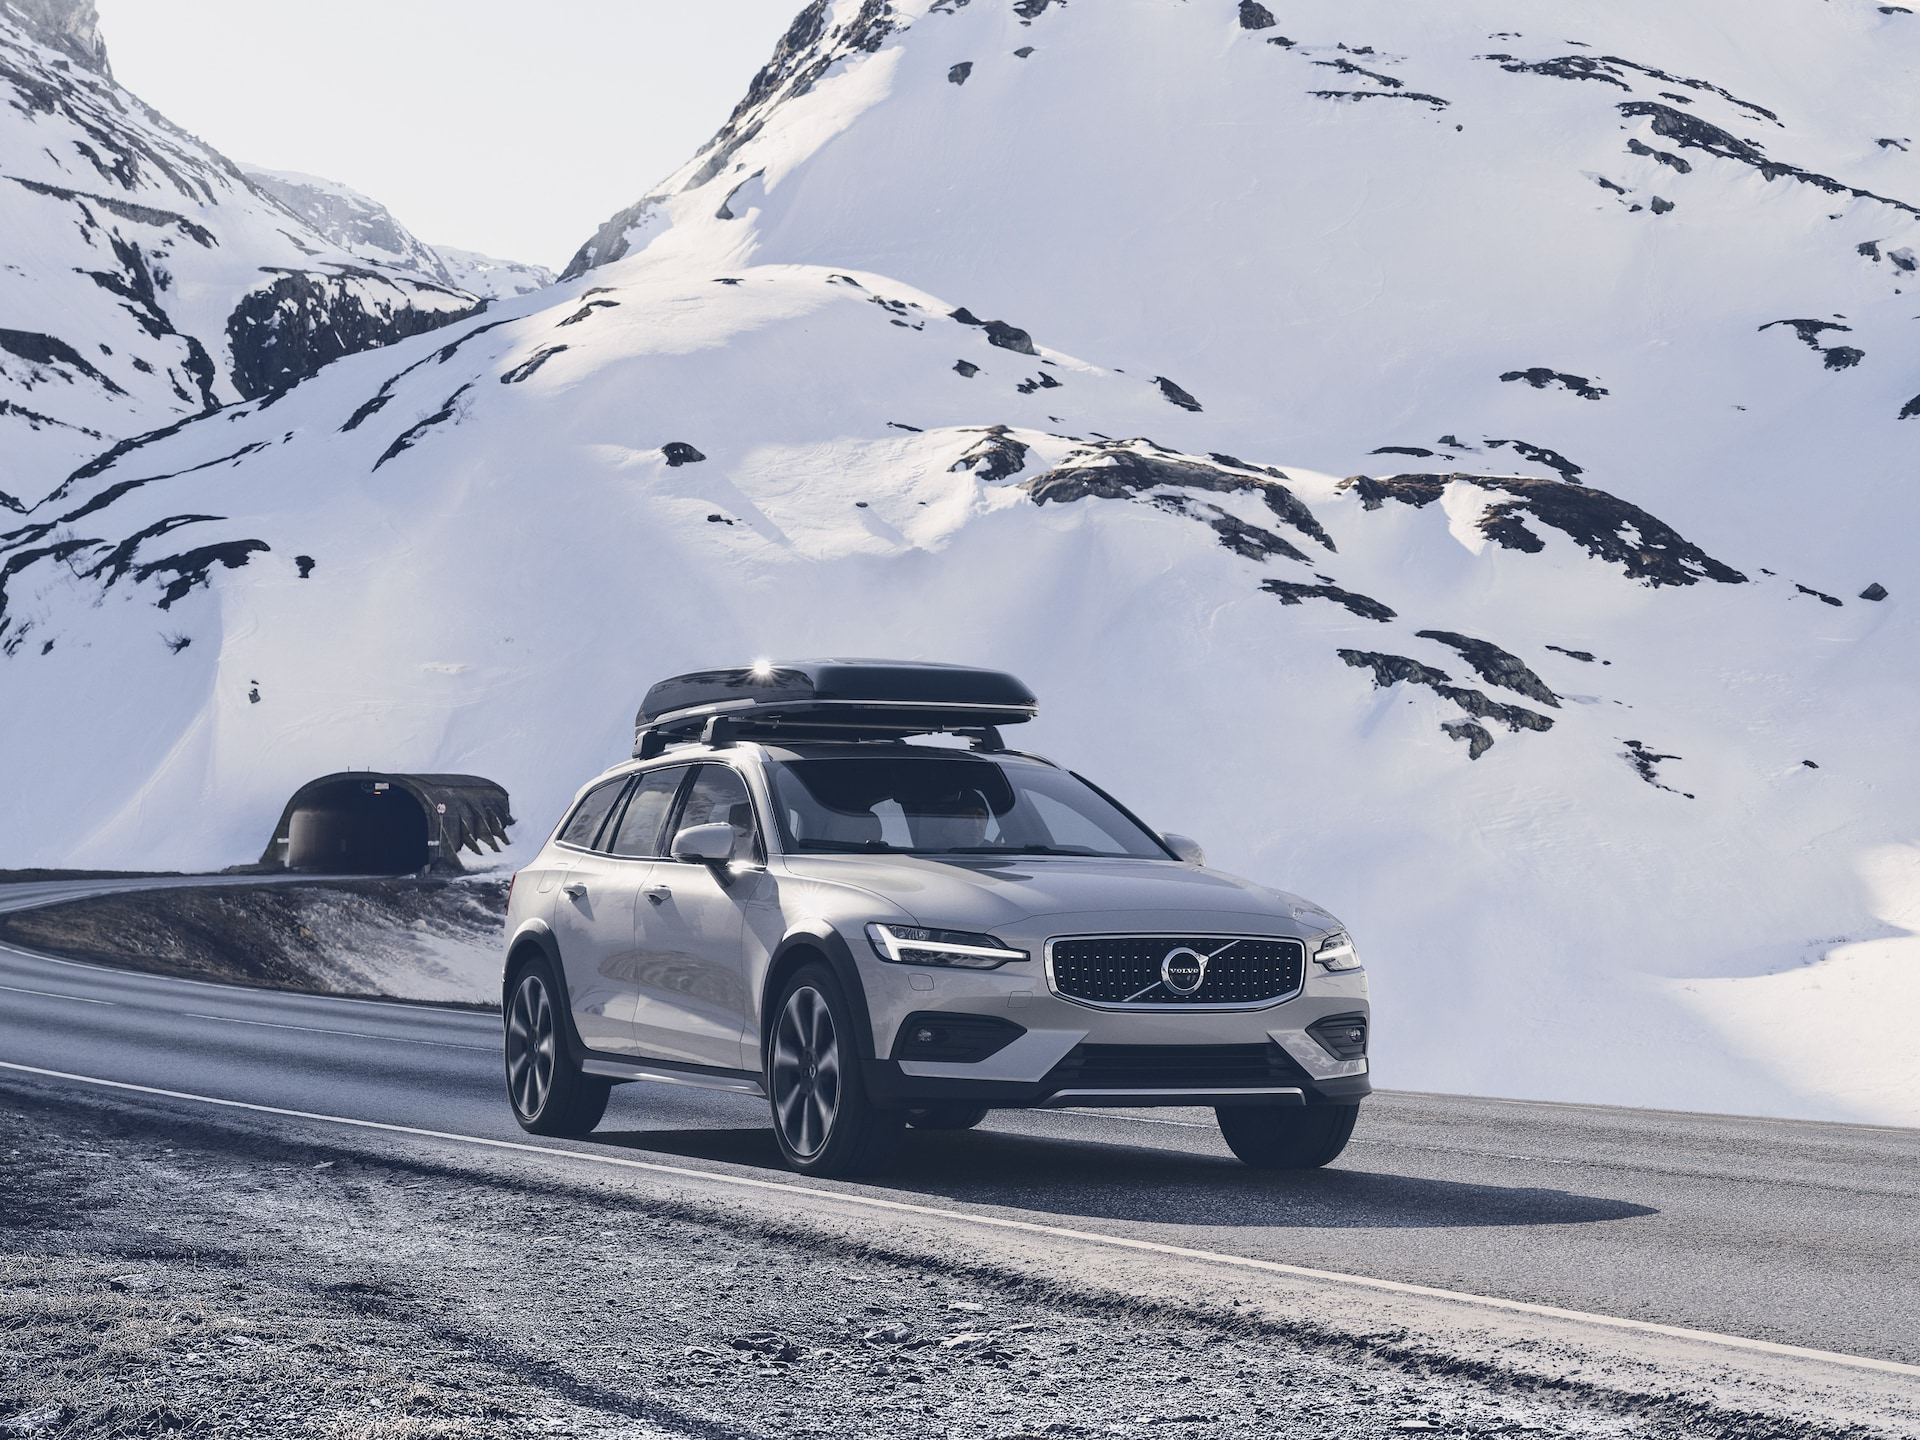 Volvo V60 Cross Country with roof box on a snowy mountain road